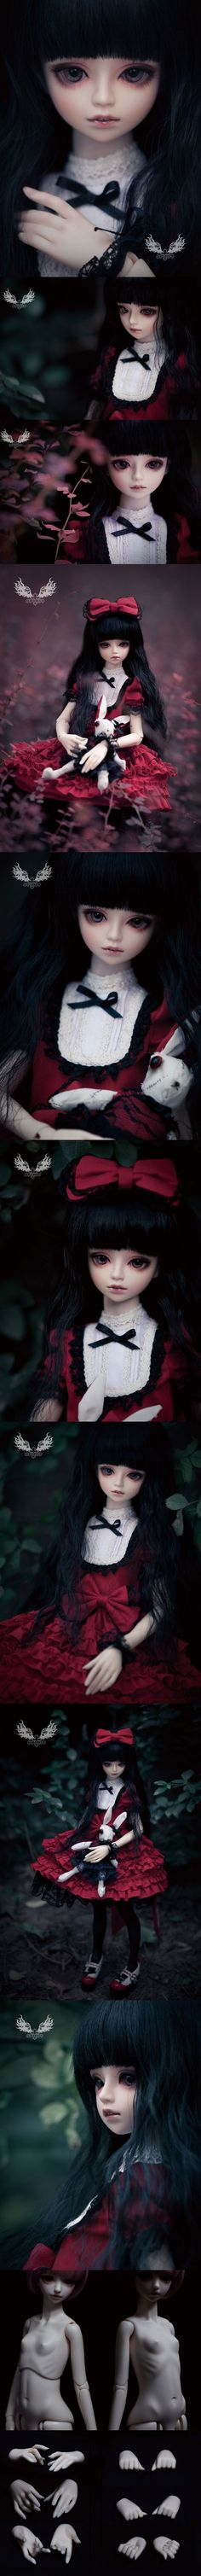 BJD Laurel 45cm Girl Ball Jointed Doll_Smart (1/4 size)_SPIRIT DOLL_DOLL_Ball Jointed Dolls (BJD) company-Legenddoll